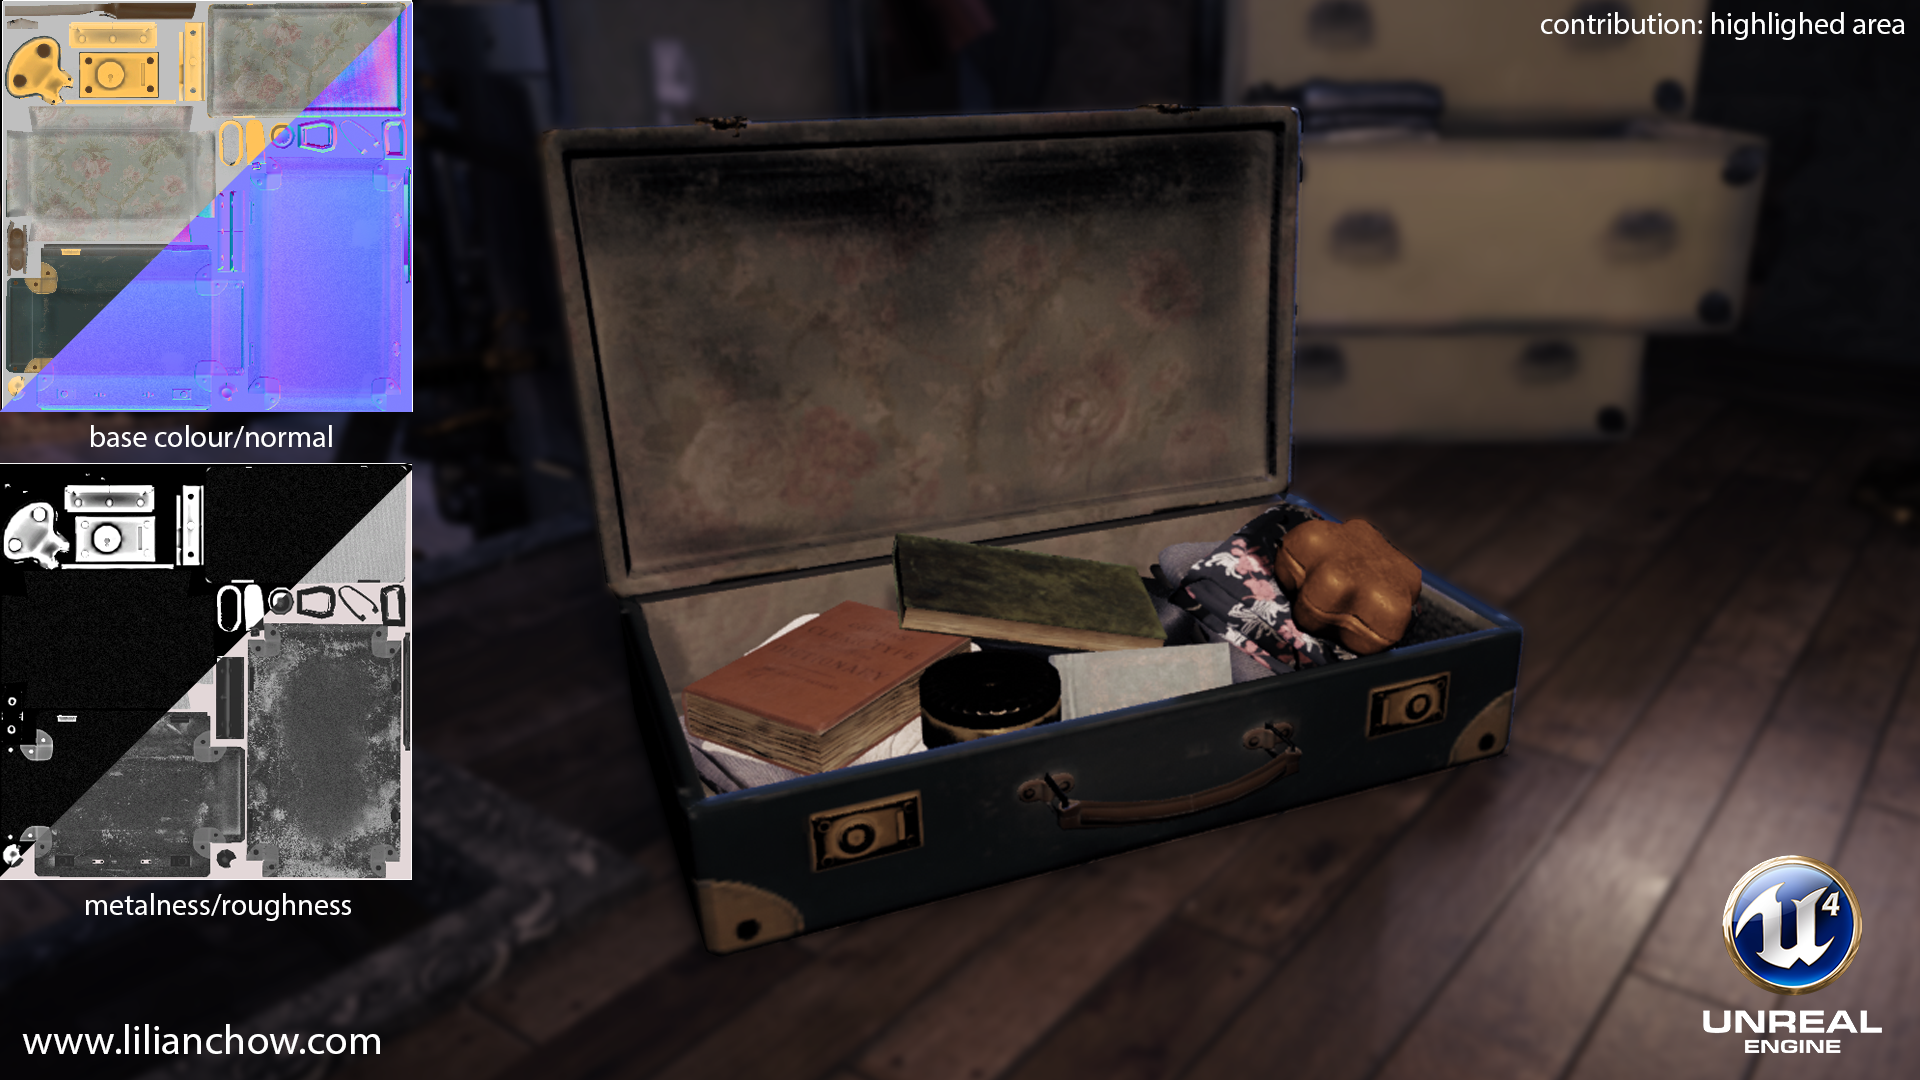 LilianChow_ThePrestige_Suitcase01_info.png